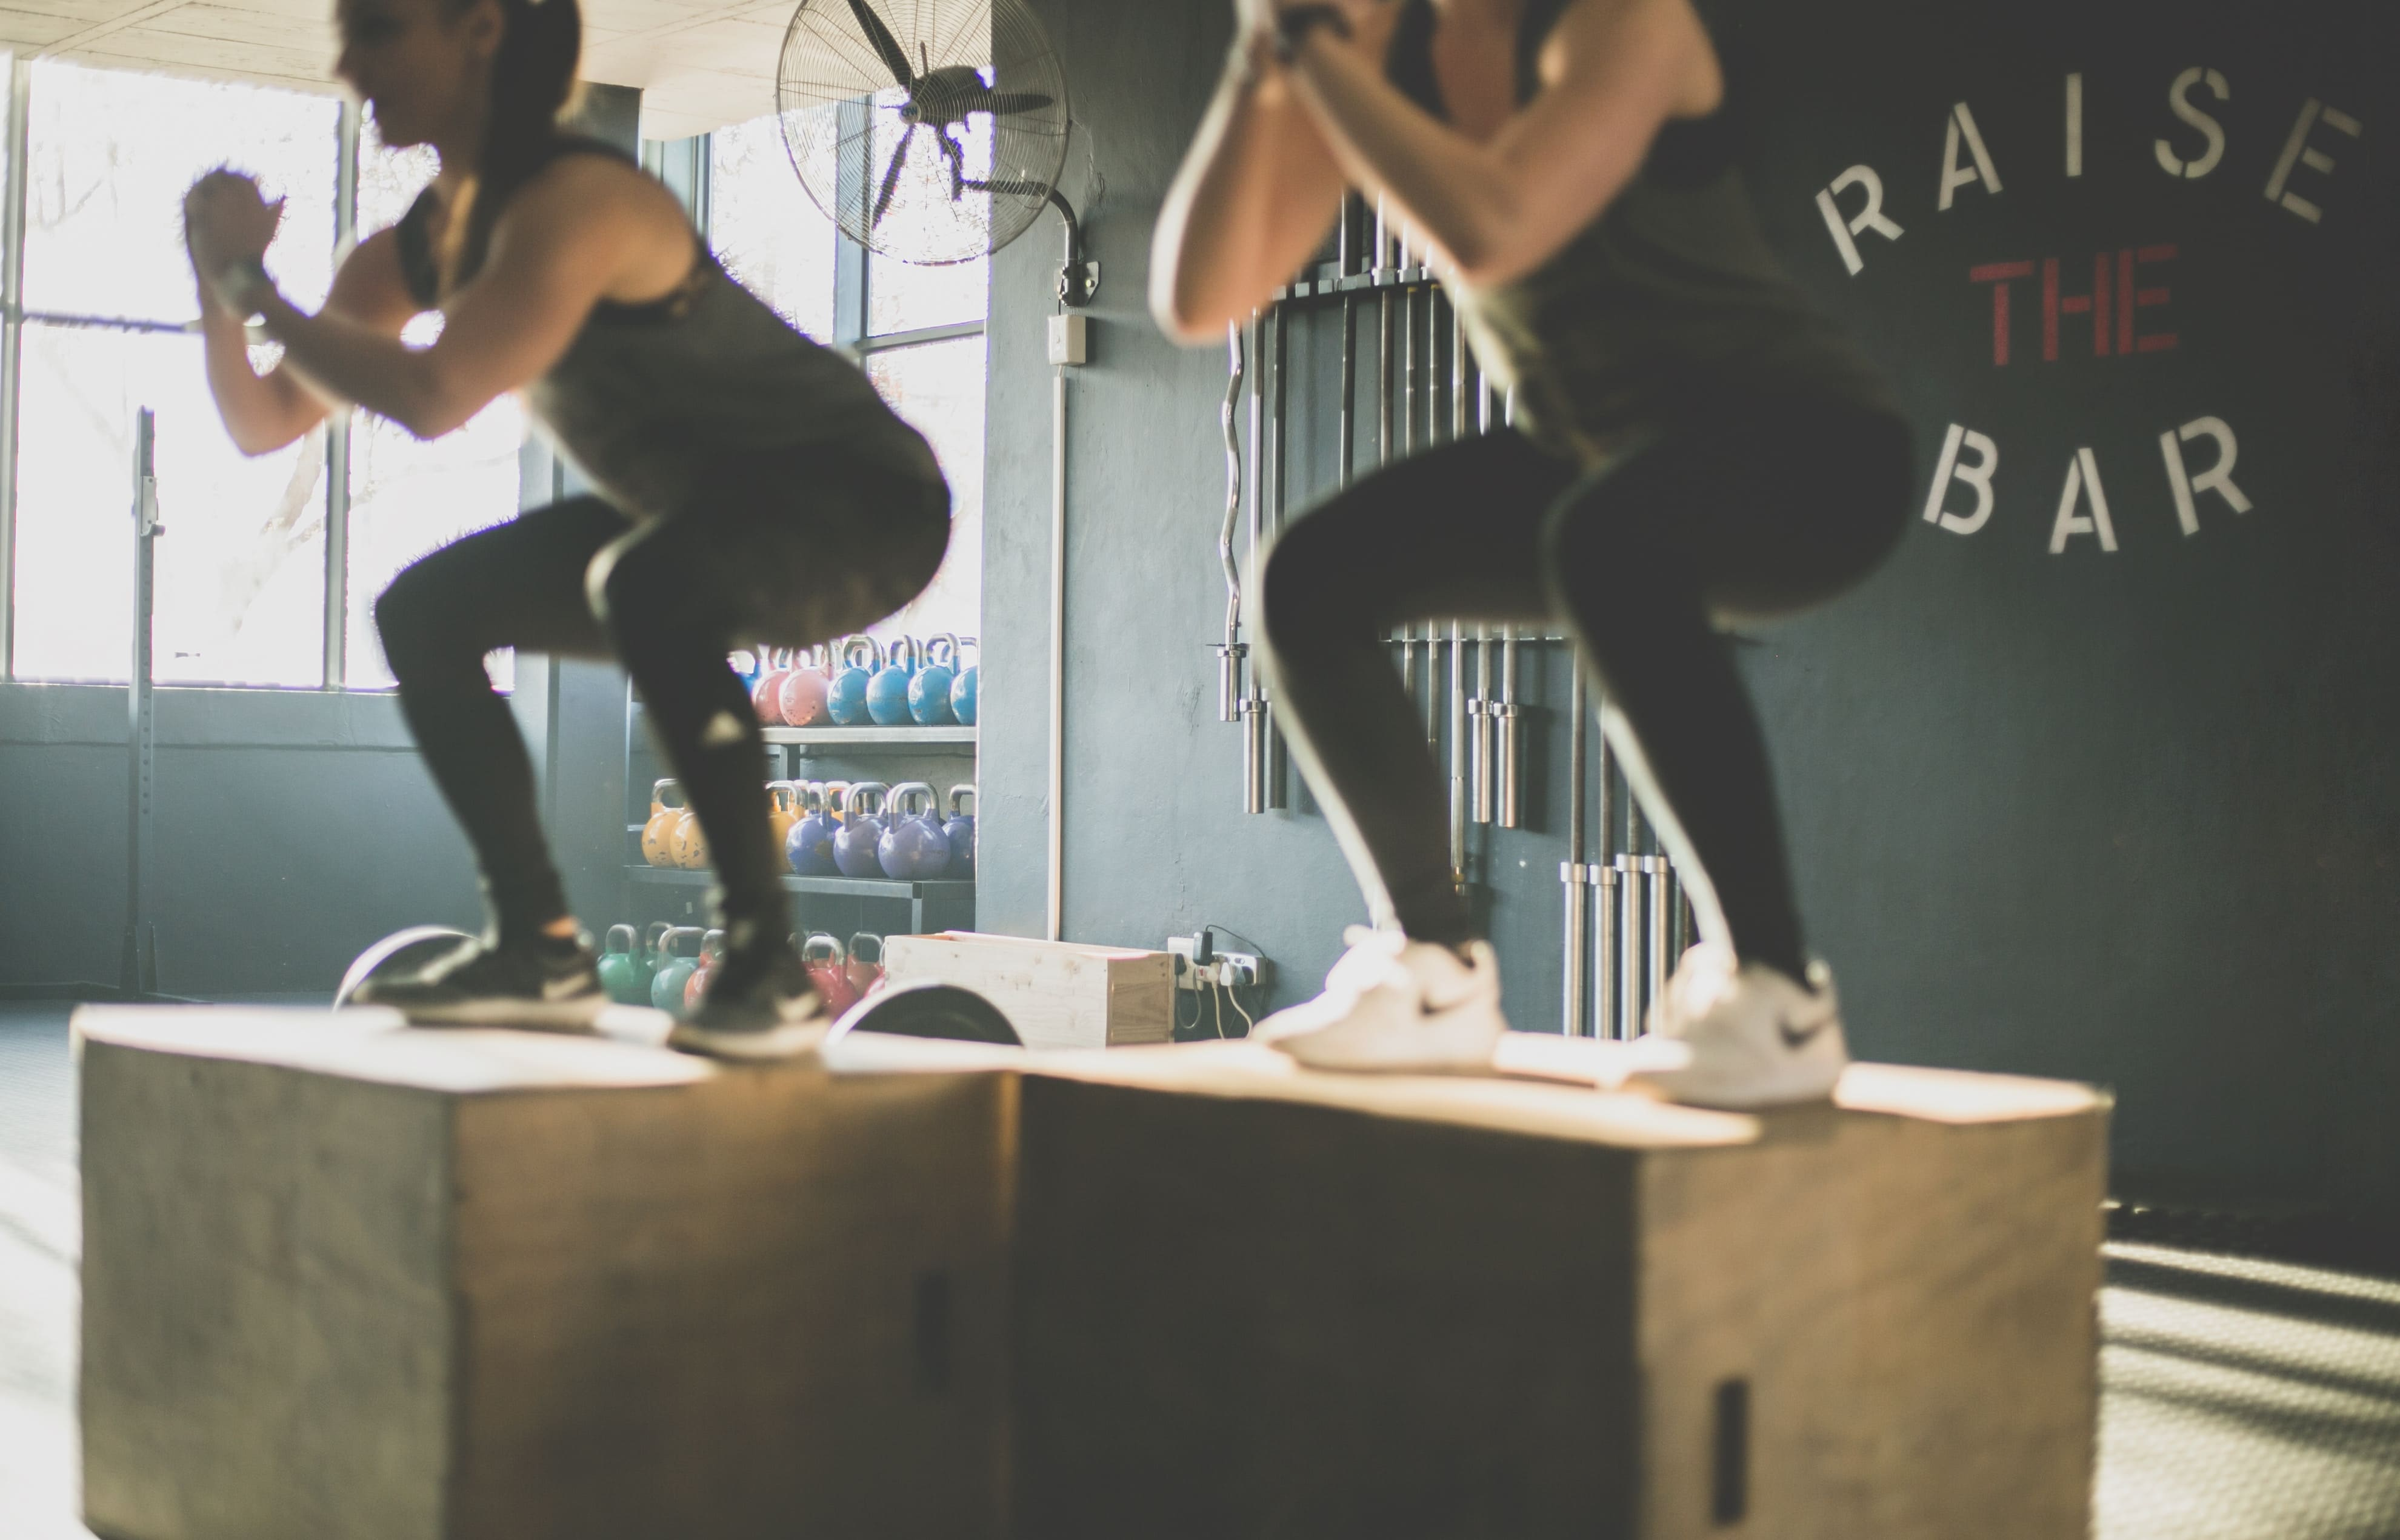 The squat is the bread and butter of ski training